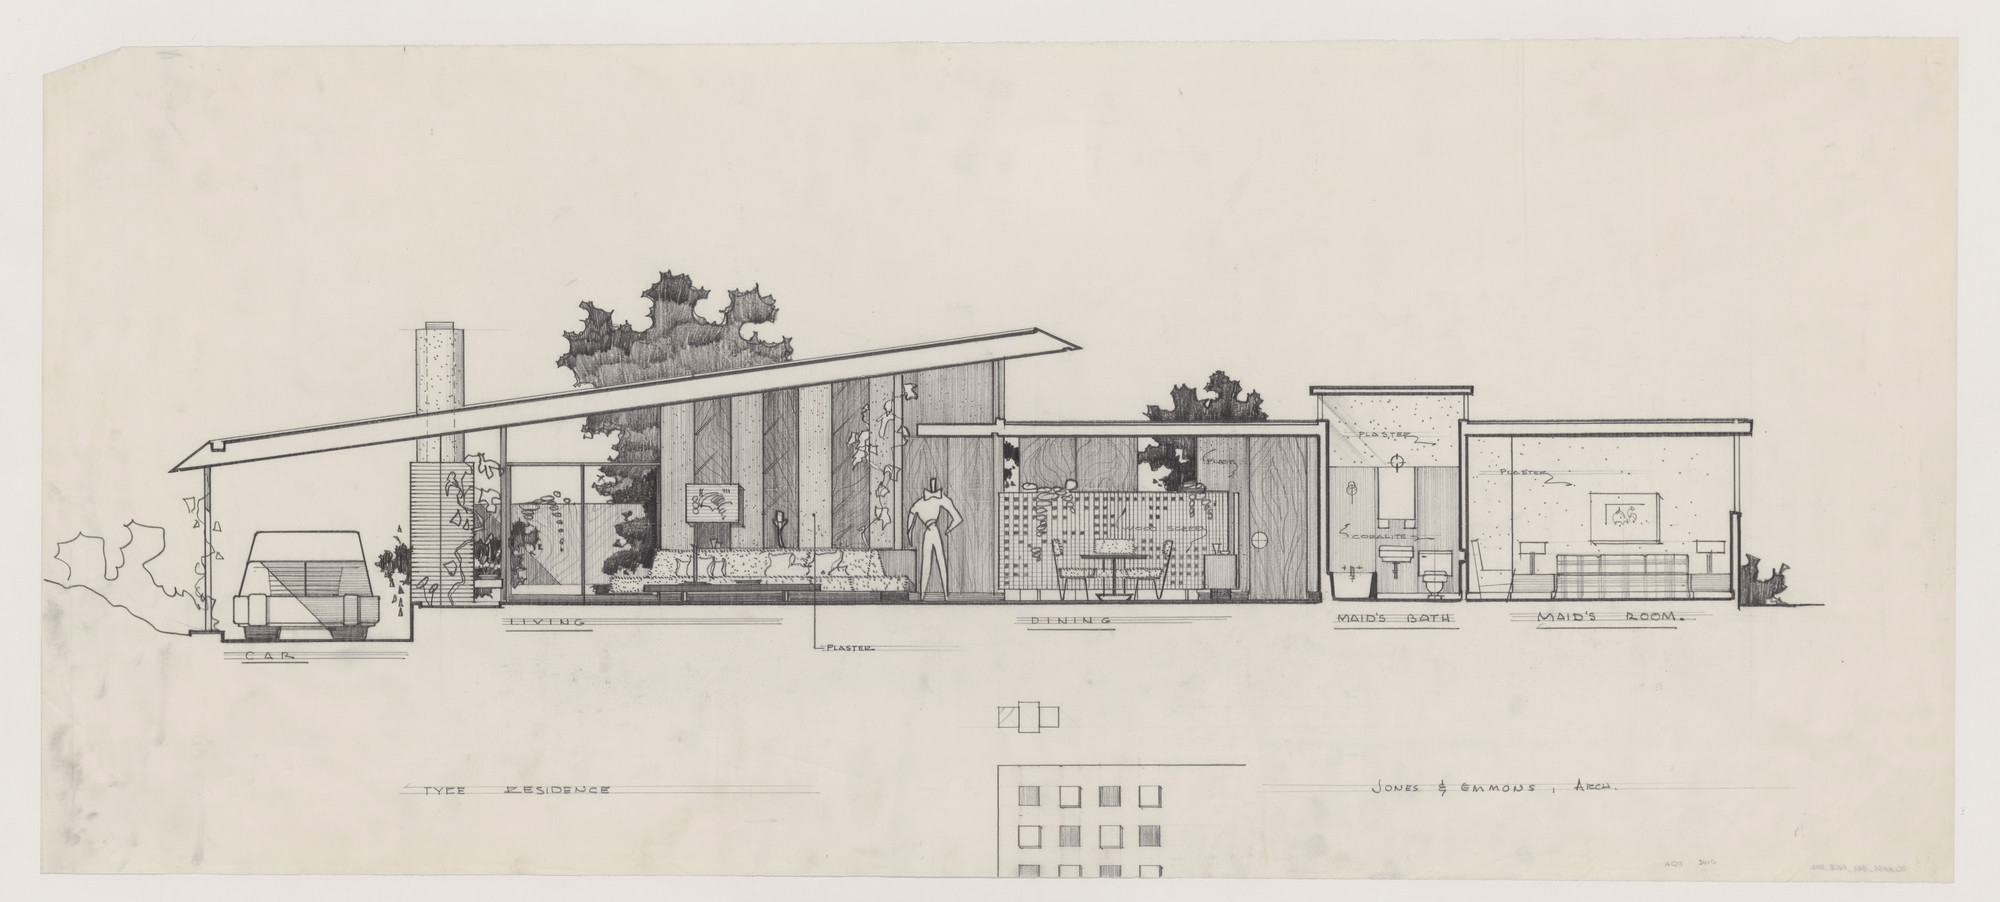 A. Quincy Jones and Frederick E. Emmons, Architects. Milton S. Tyre House, Los Angeles, California, 1951-54. Transverse section through living room, dining room, and maid's quarters. Image Courtesy of Charles E. Young Research Library, UCLA Library Special Collections